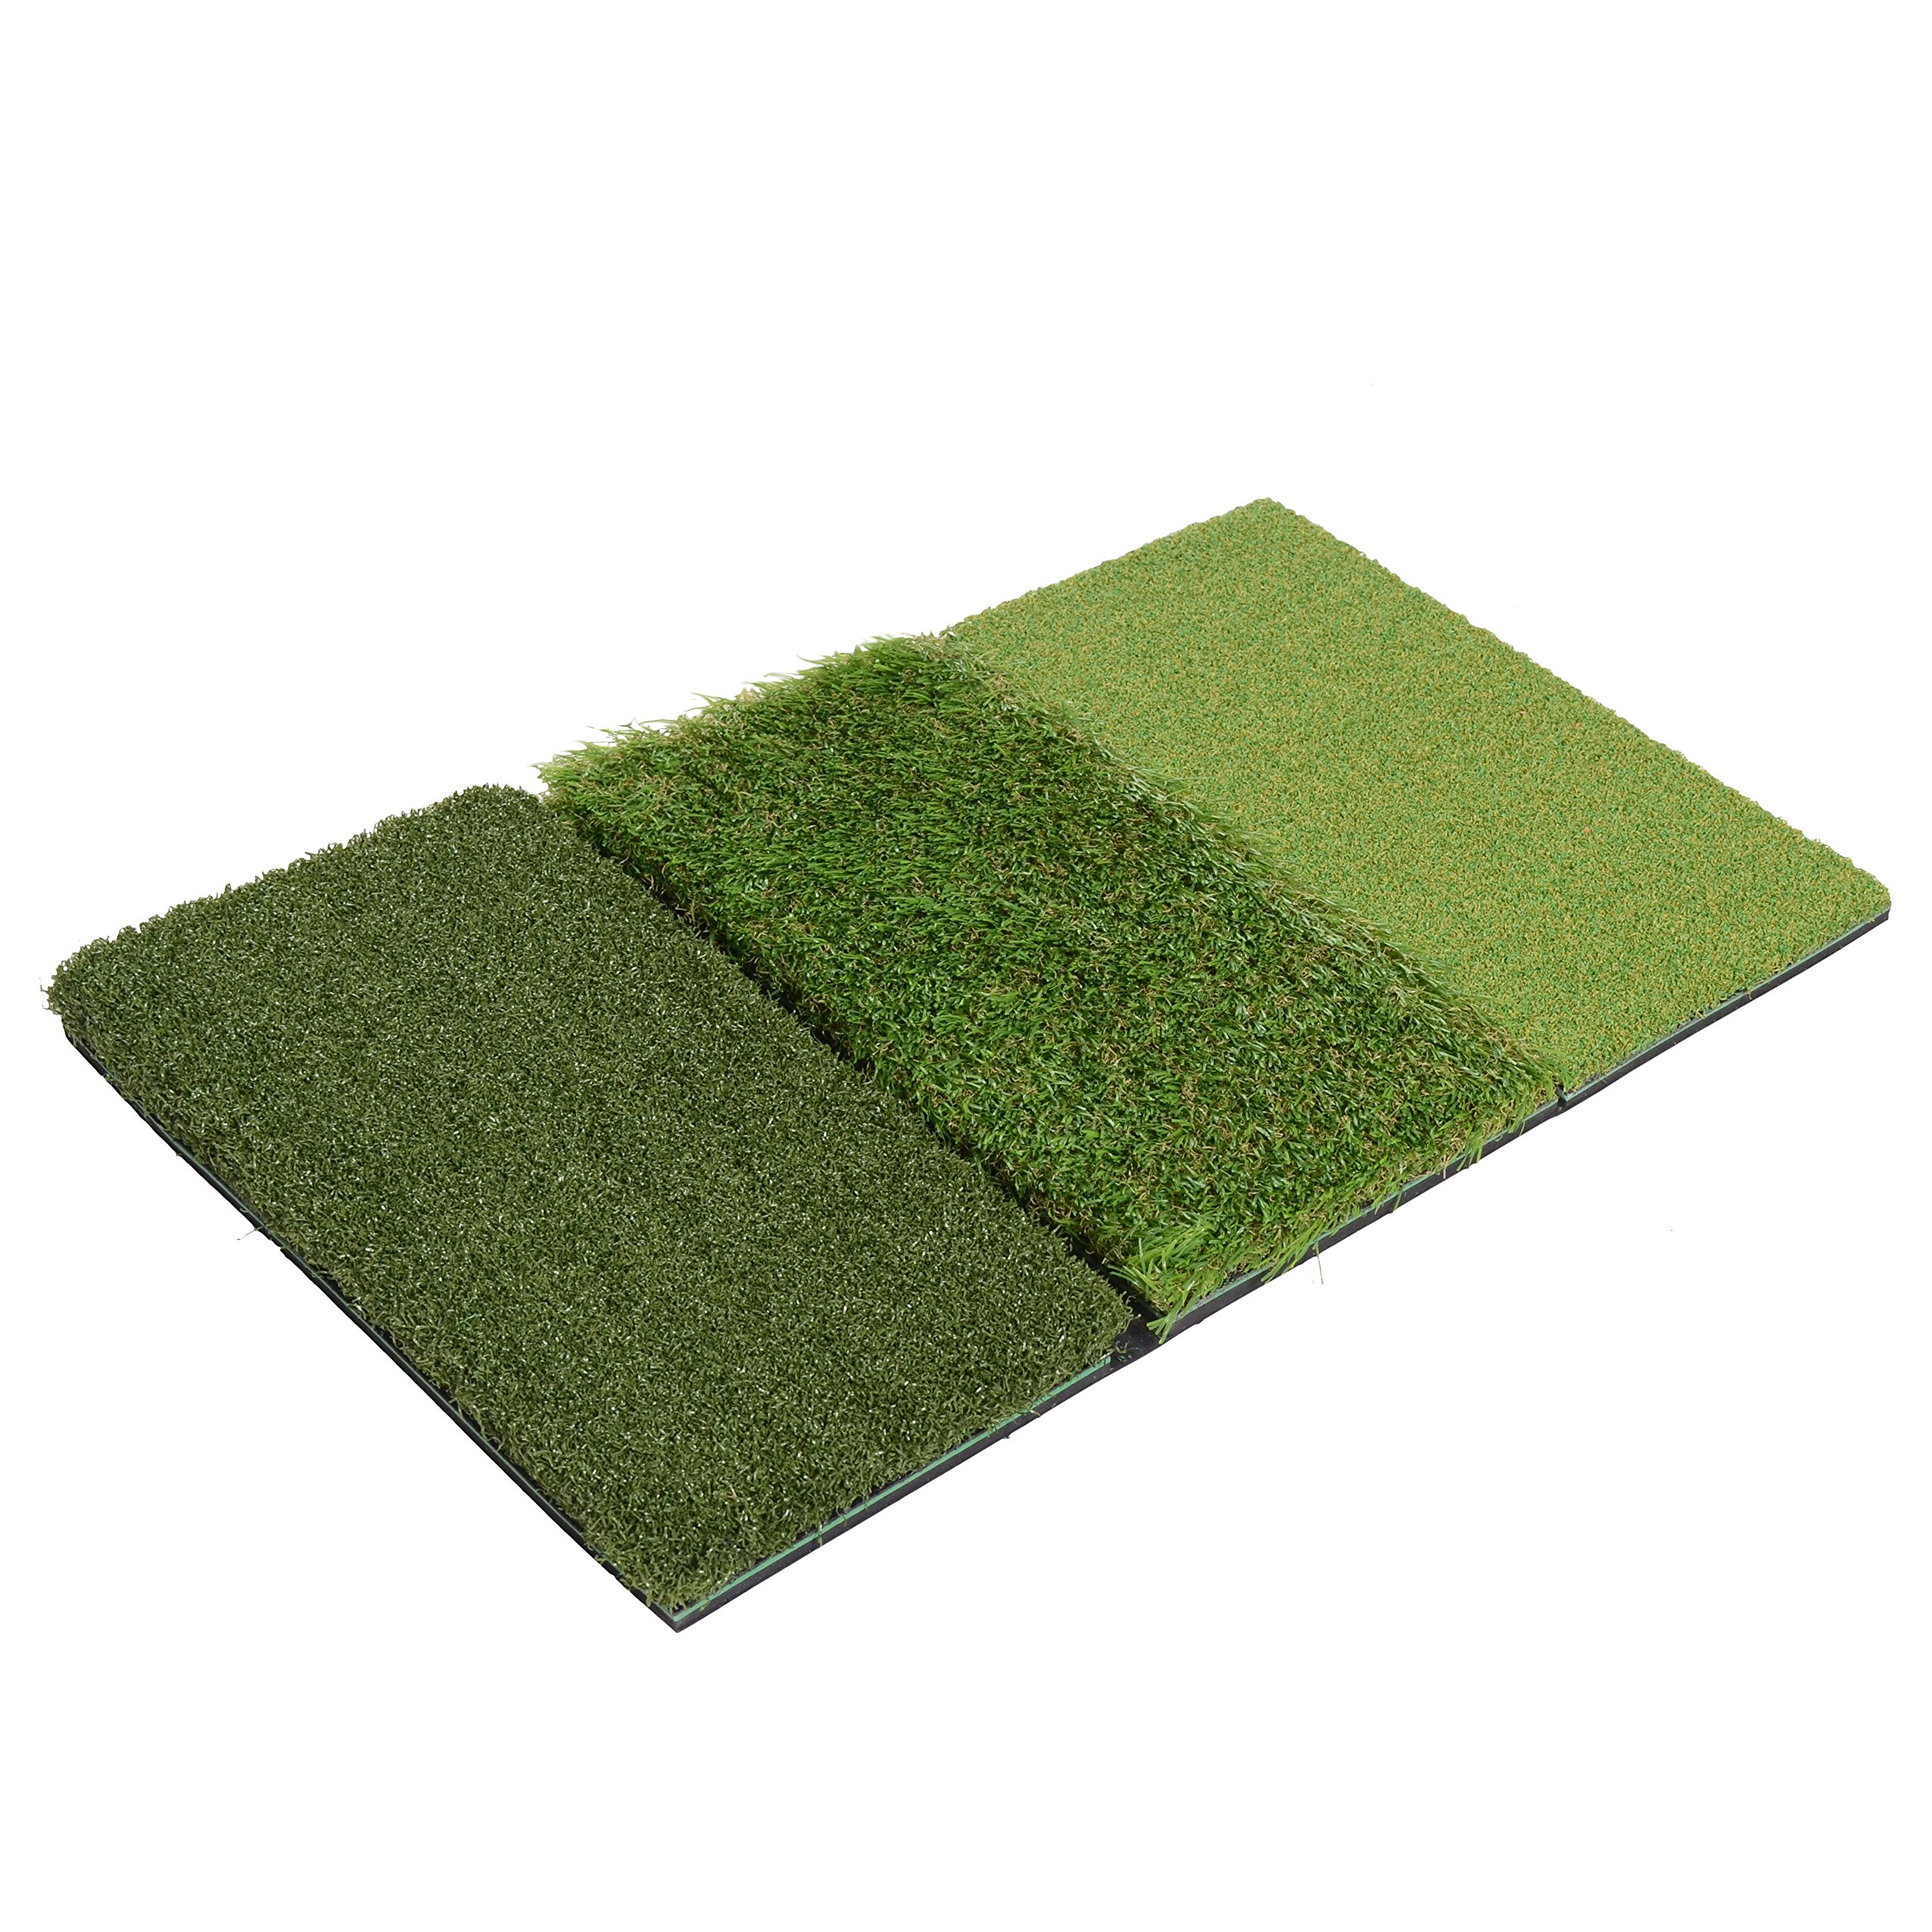 Milliard Golf 3-in-1 Turf Grass Mat Foldable Includes Tight Lie, Rough and Fairway for Driving, Chipping, and Putting Golf Practice and Training - 25x16 inches. by Milliard